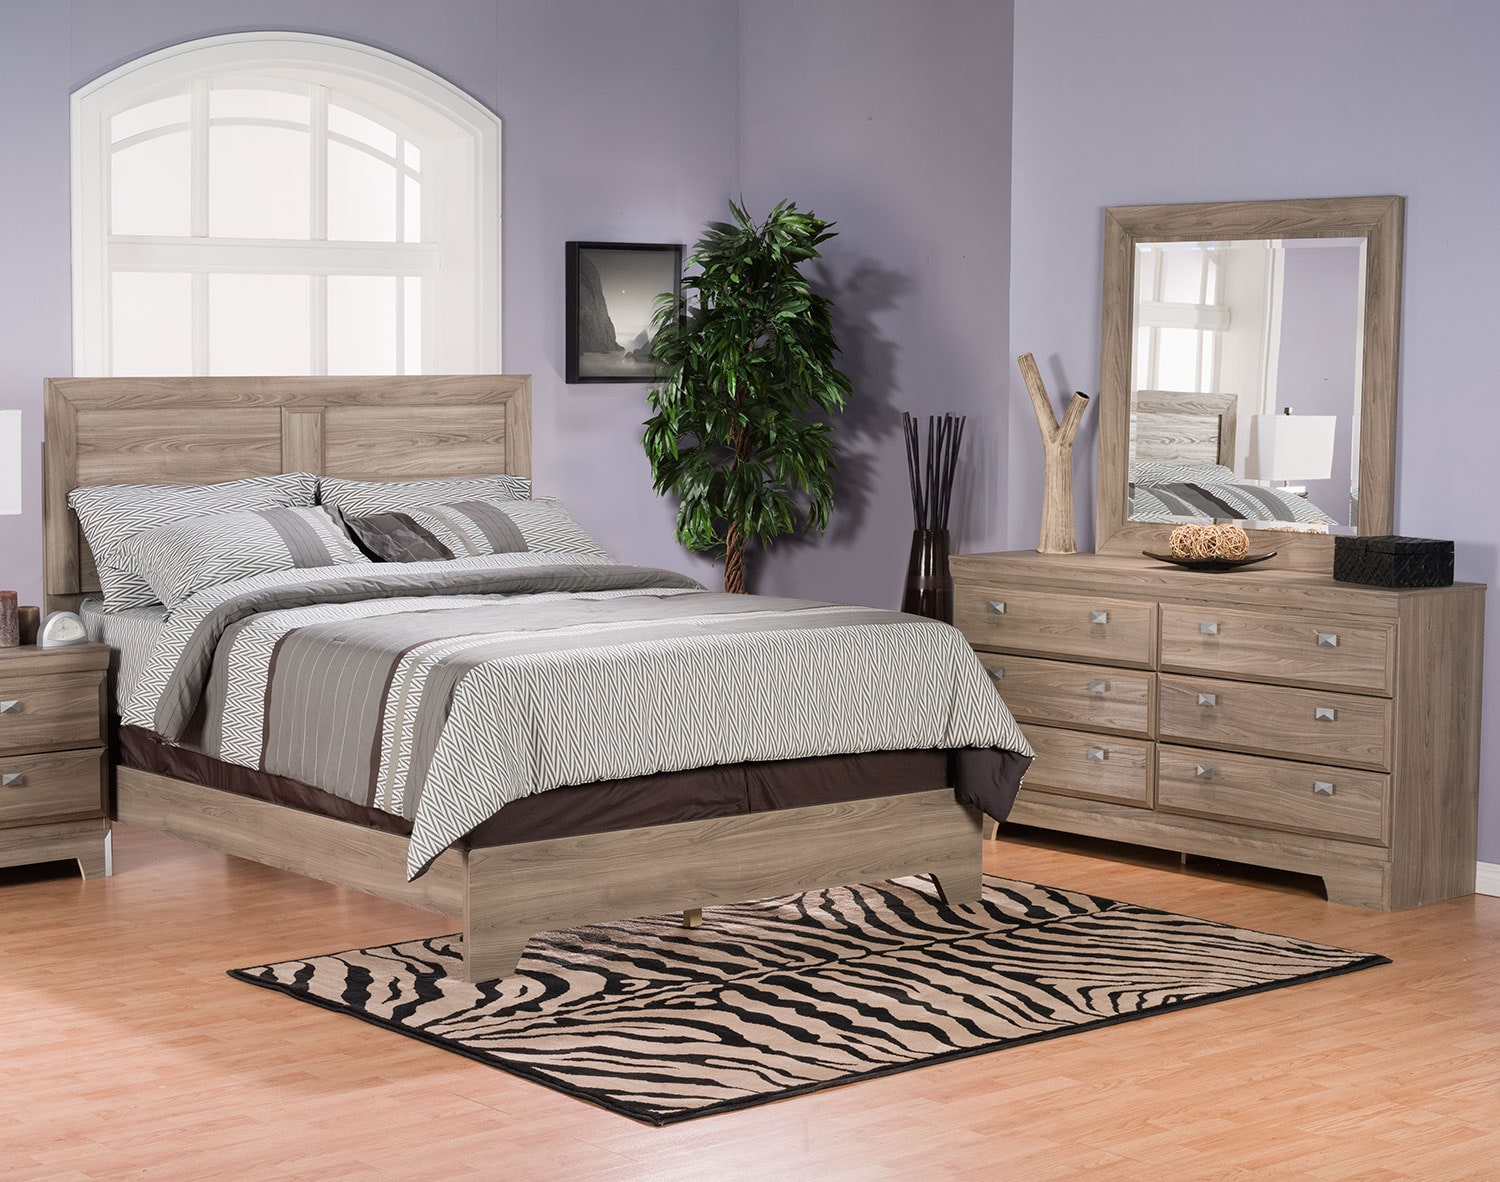 Bedroom Furniture - Yorkdale Light 5-Piece Queen Panel Bedroom Package